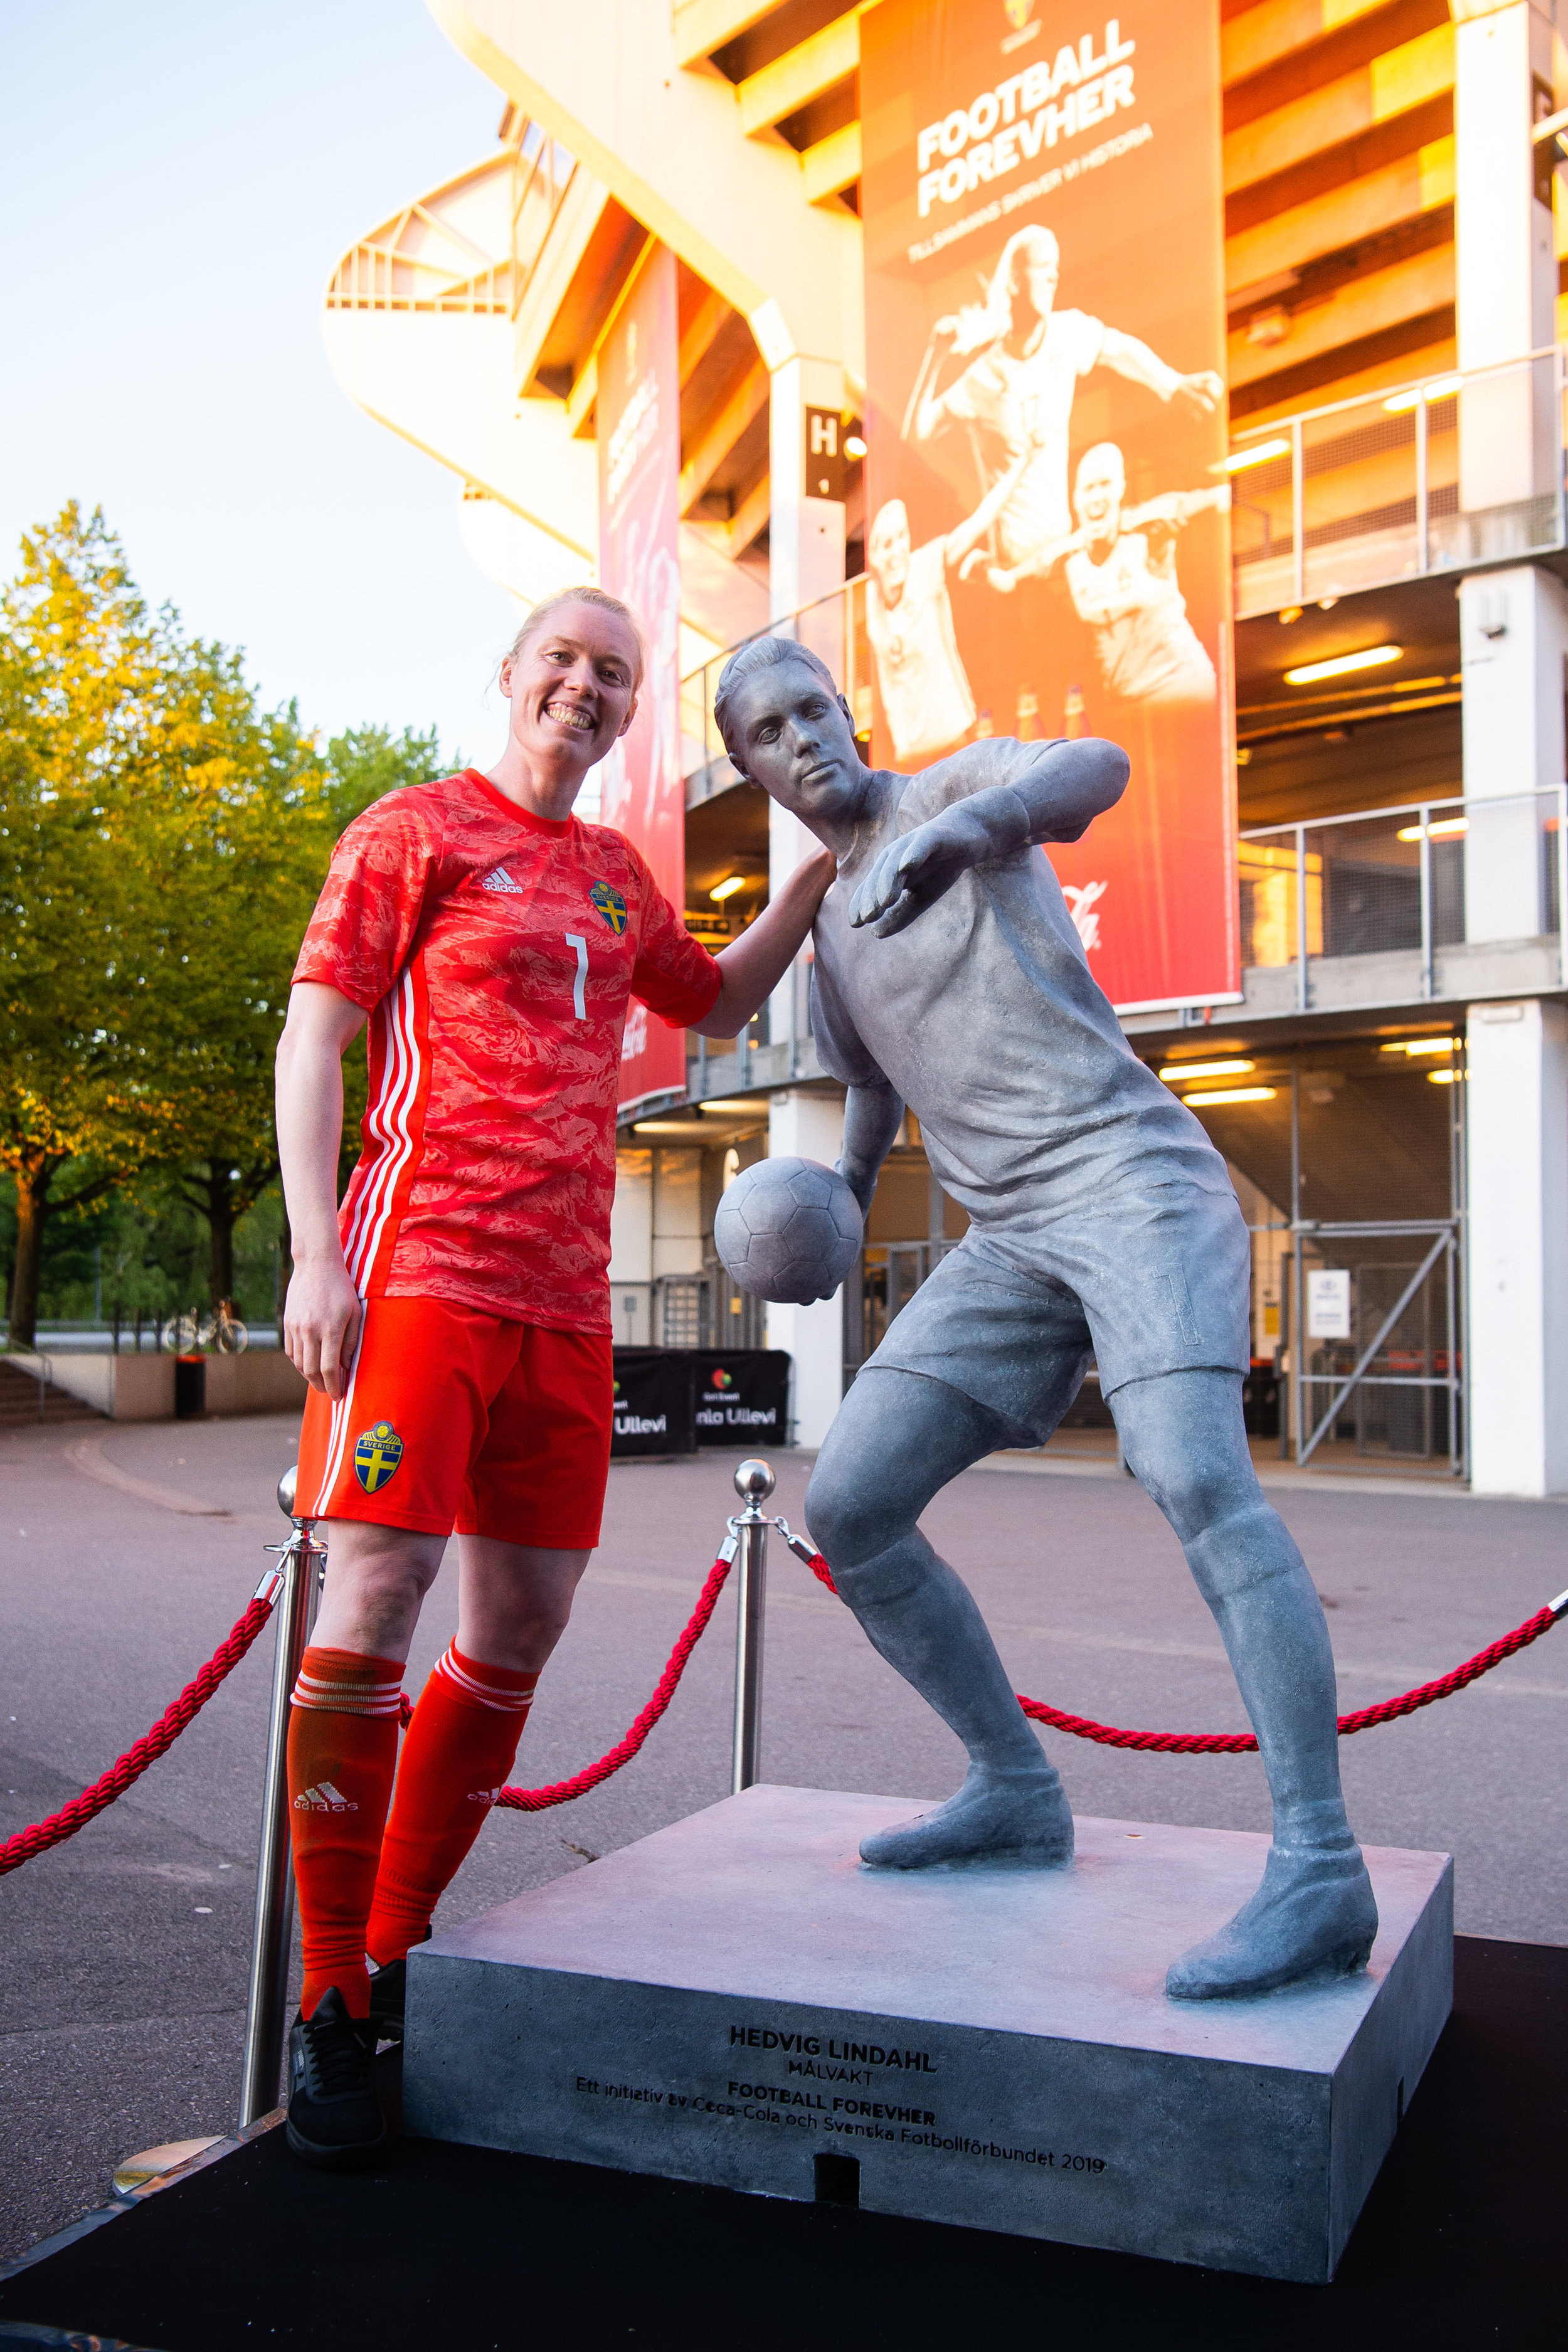 #FootballForevHer - An initiative by Coca-Cola Sweden and the Swedish FA